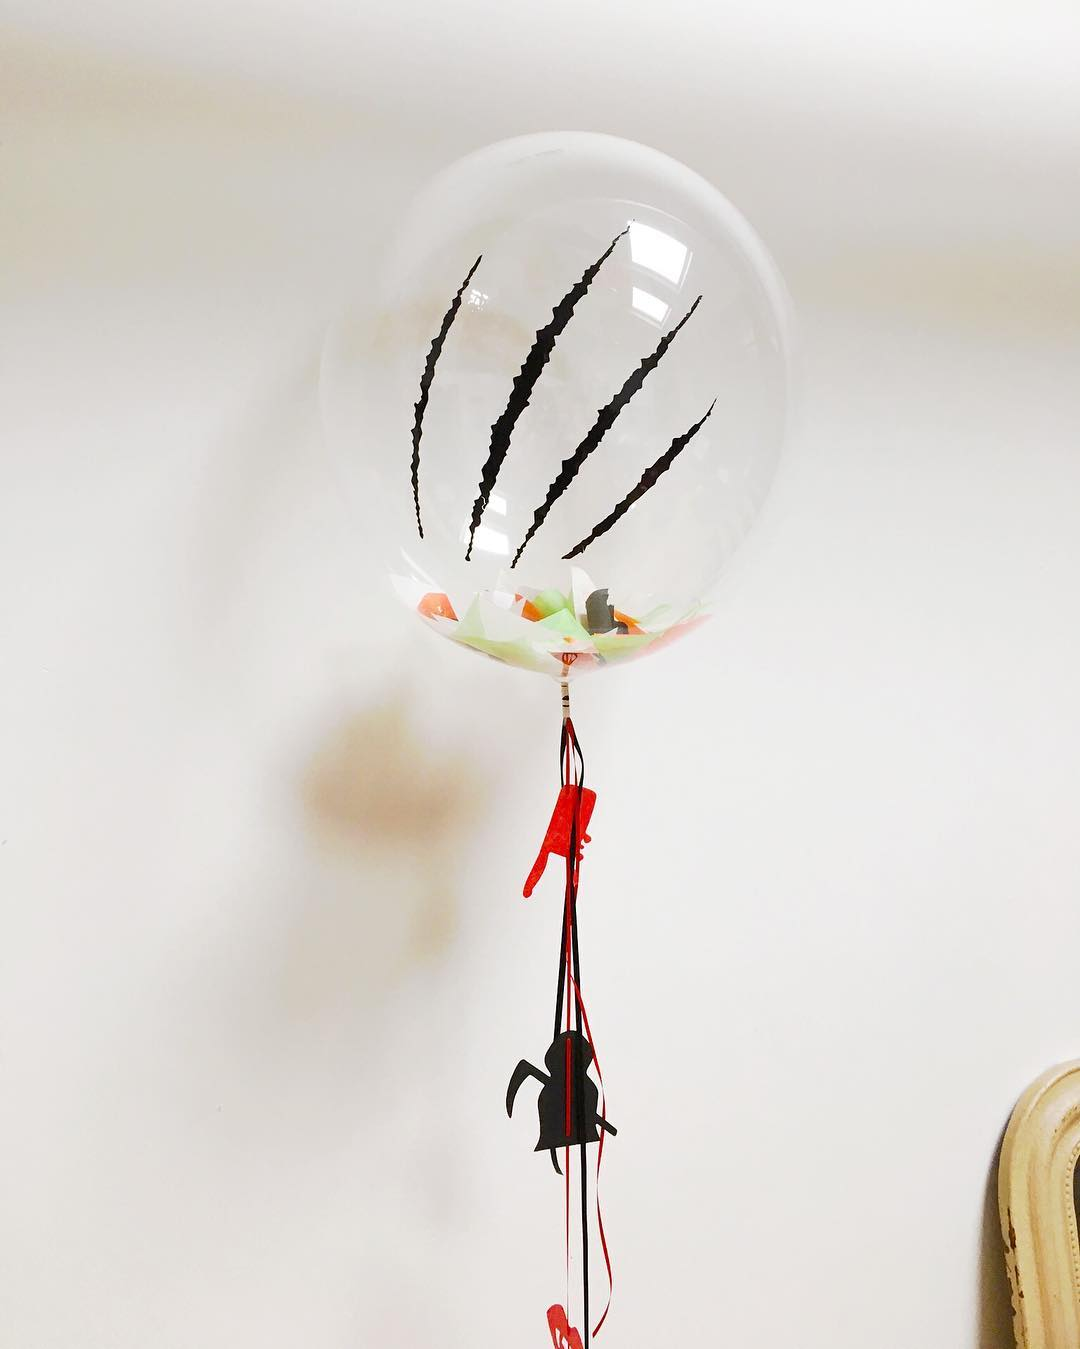 Bespoke Balloons For Halloween Party